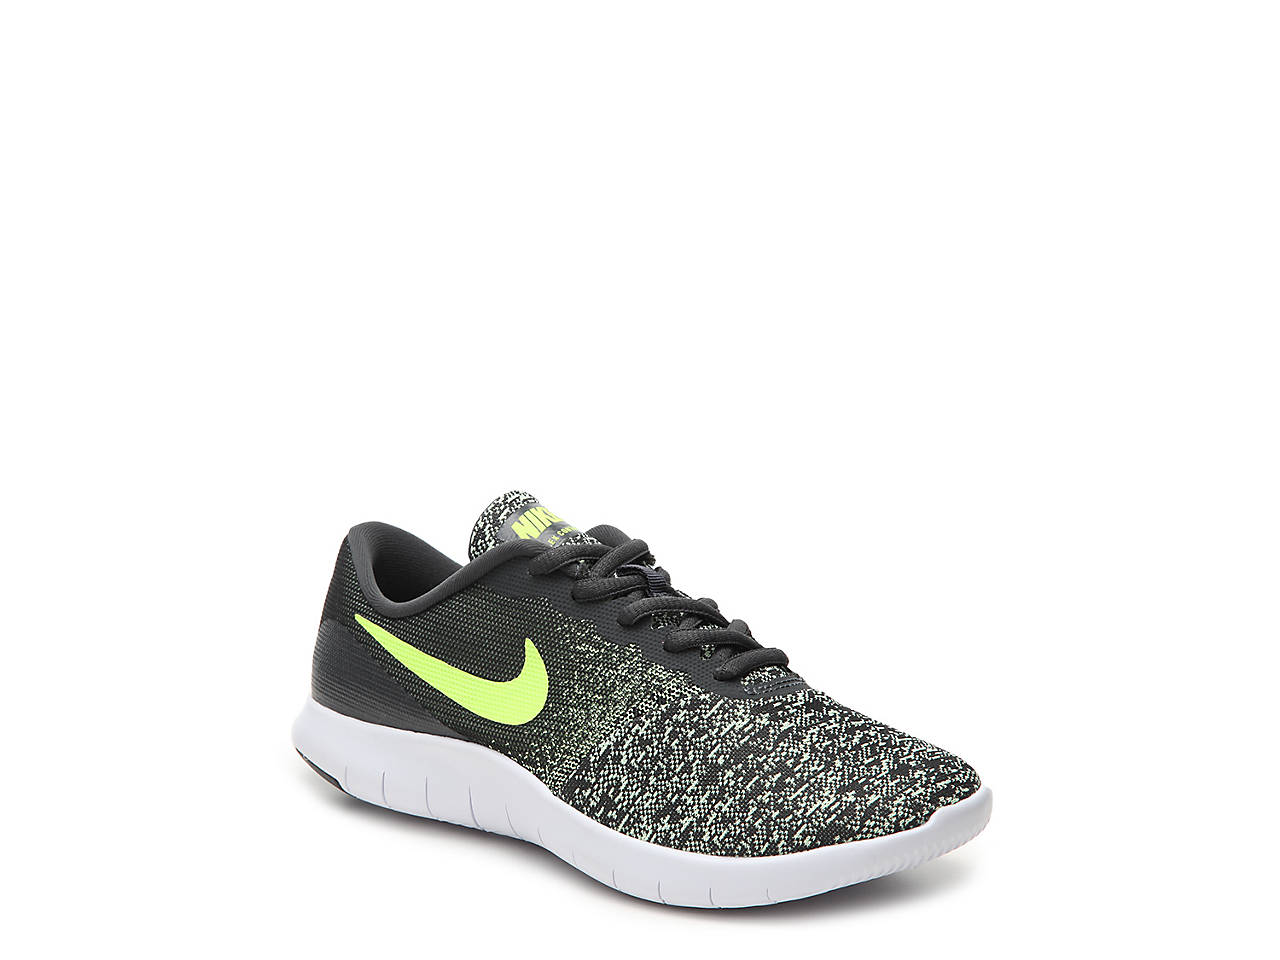 a0b2432ecab1 Nike Flex Contact Youth Running Shoe Kids Shoes